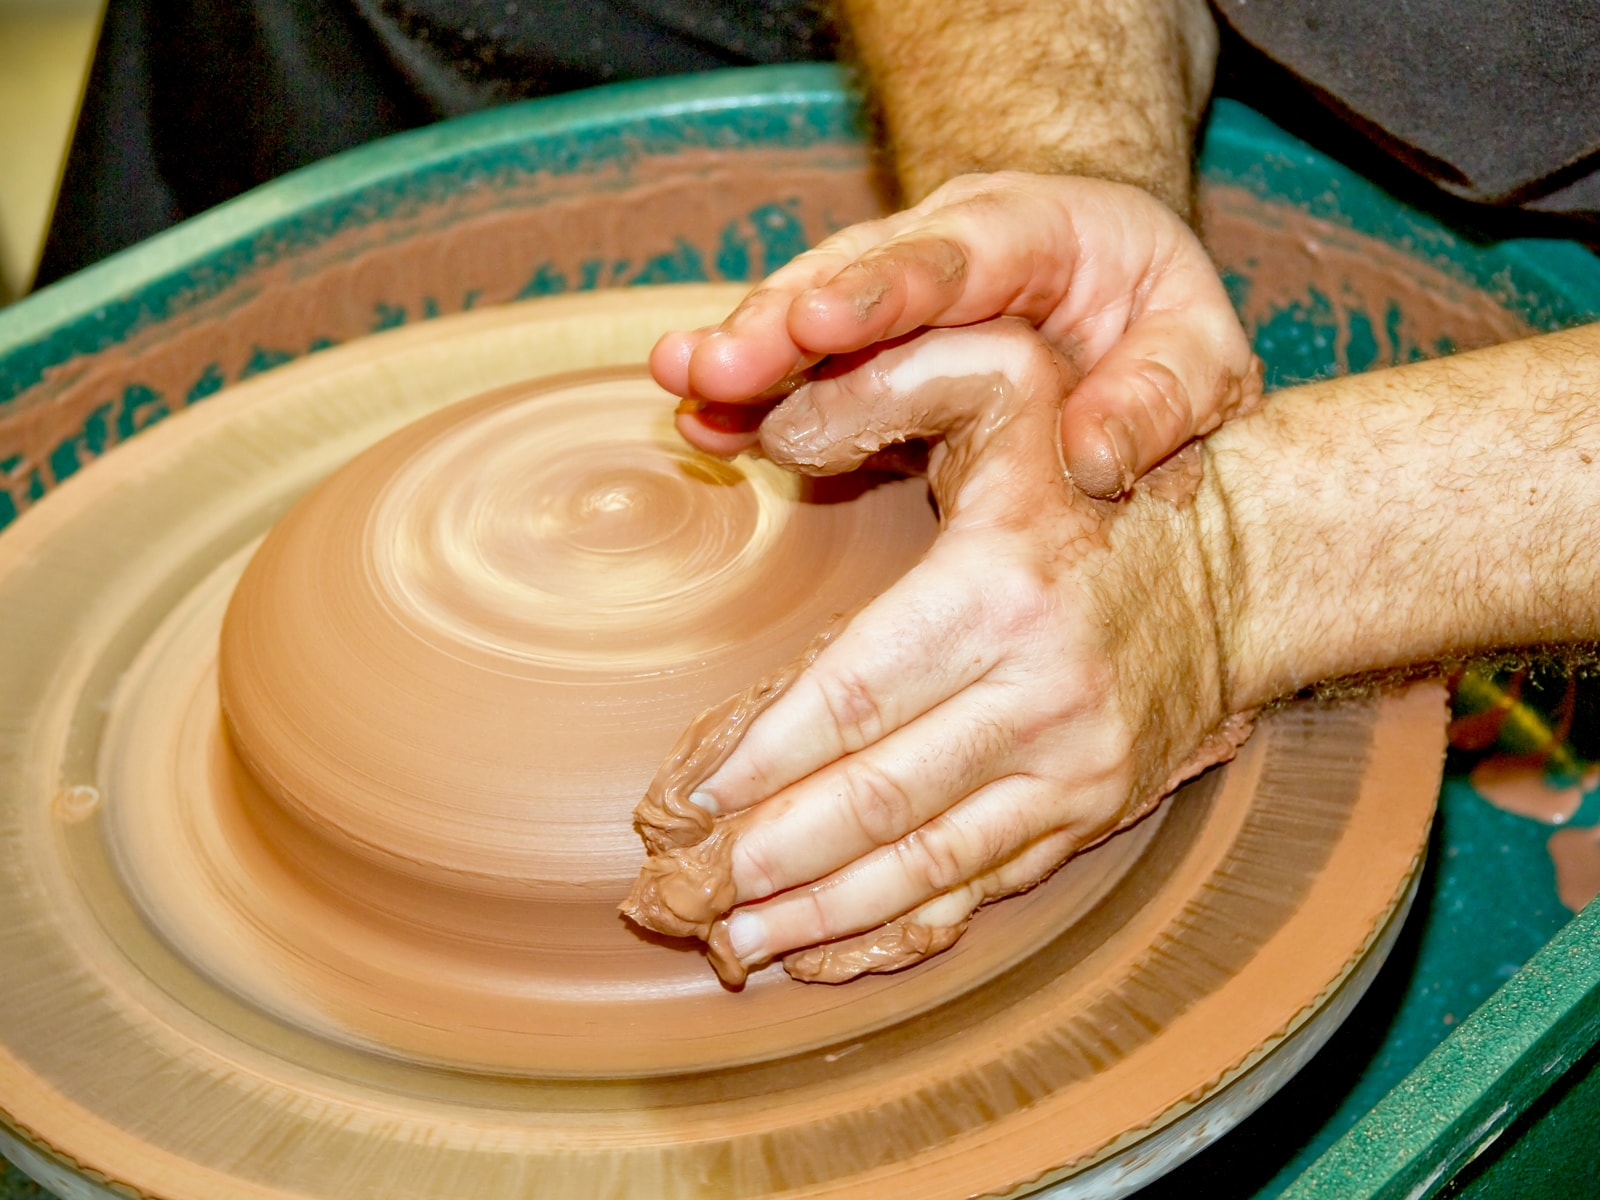 Hands molding clay on a spinning wheel in the new DigiPen ceramics studio